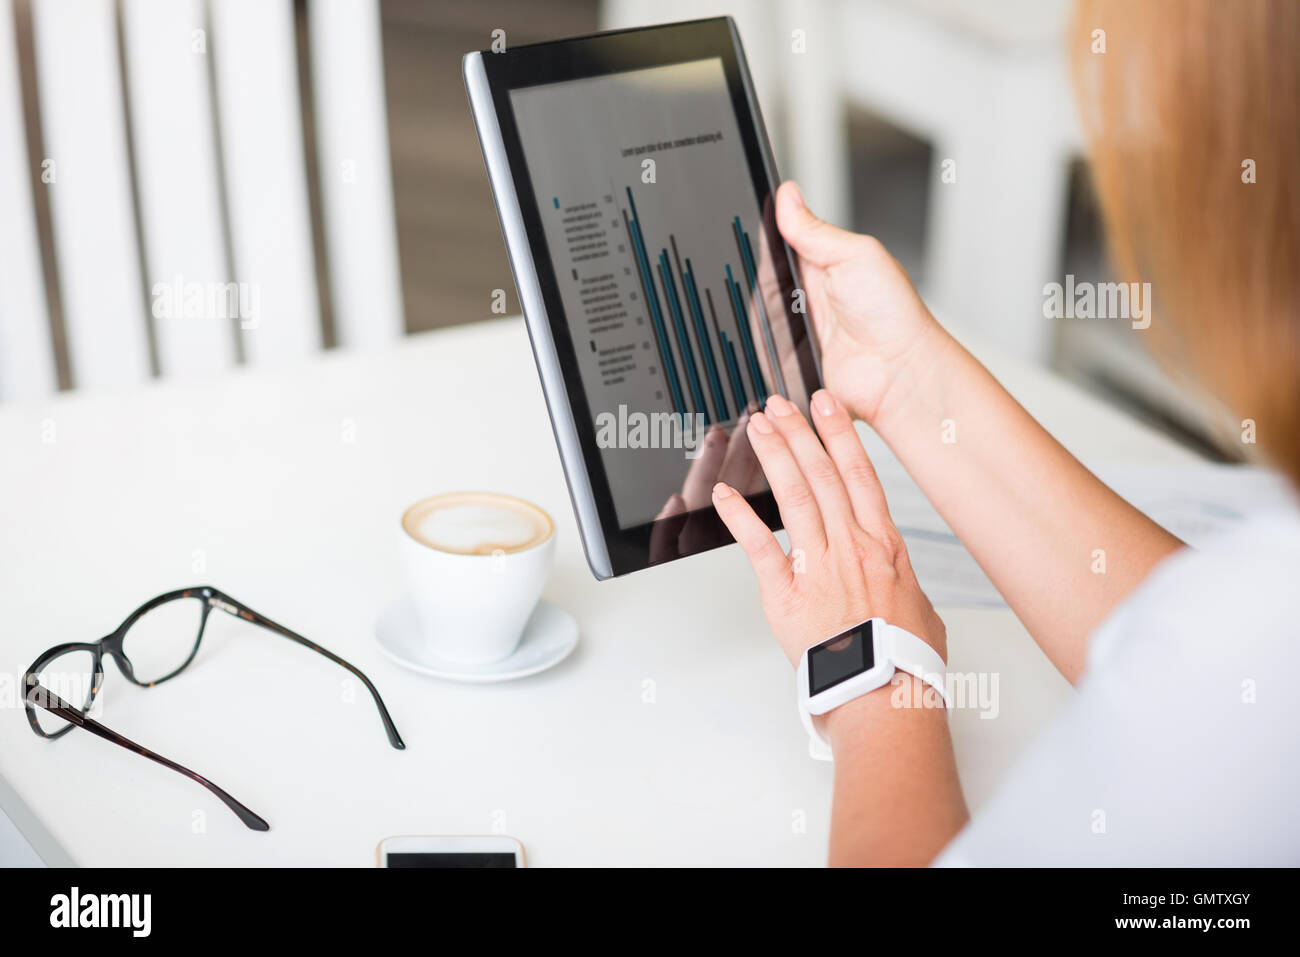 Pleasant woman using tablet - Stock Image